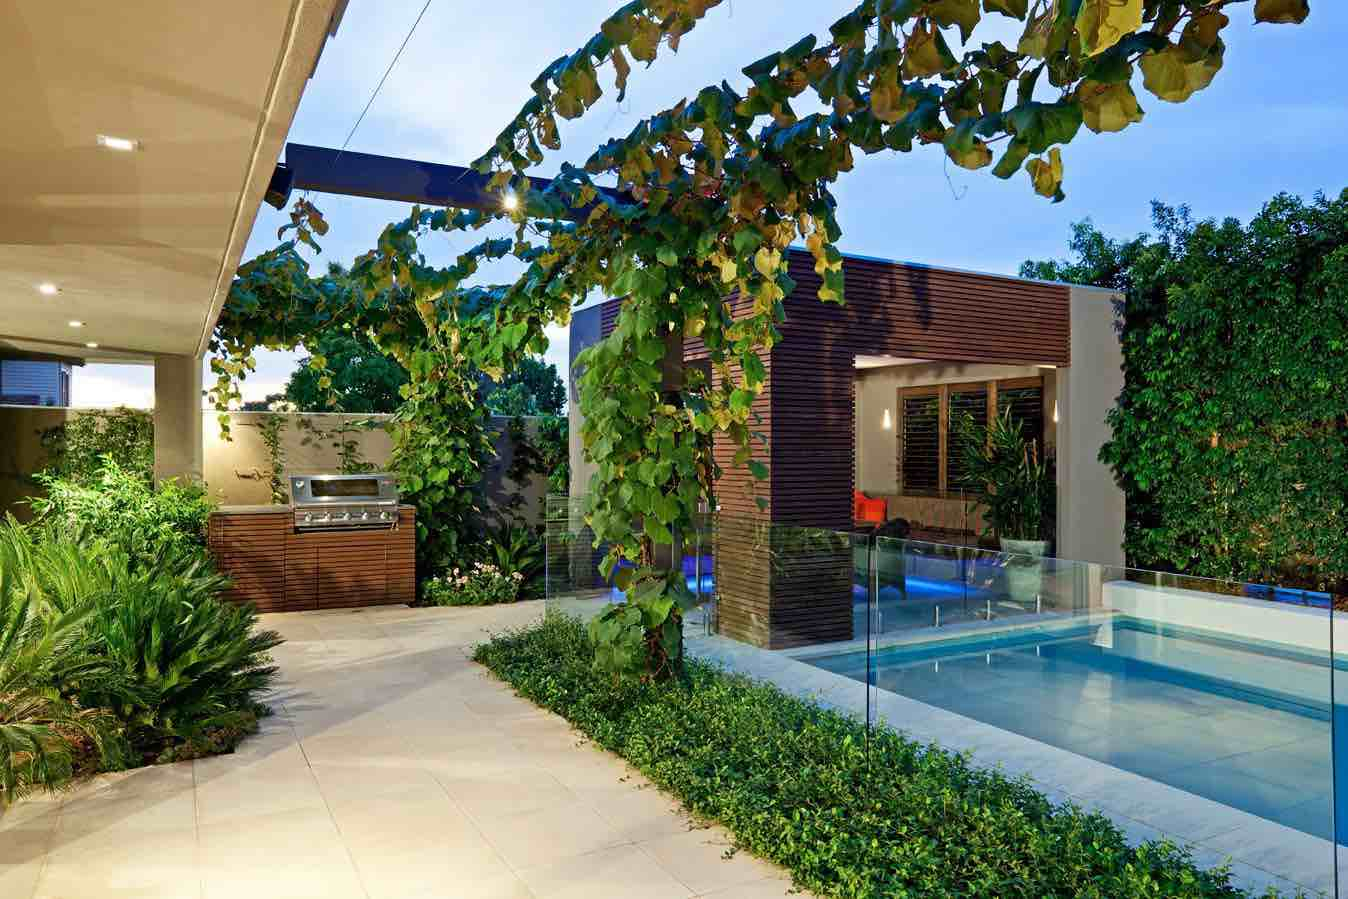 Ordinaire Small Backyard Home Design Idea